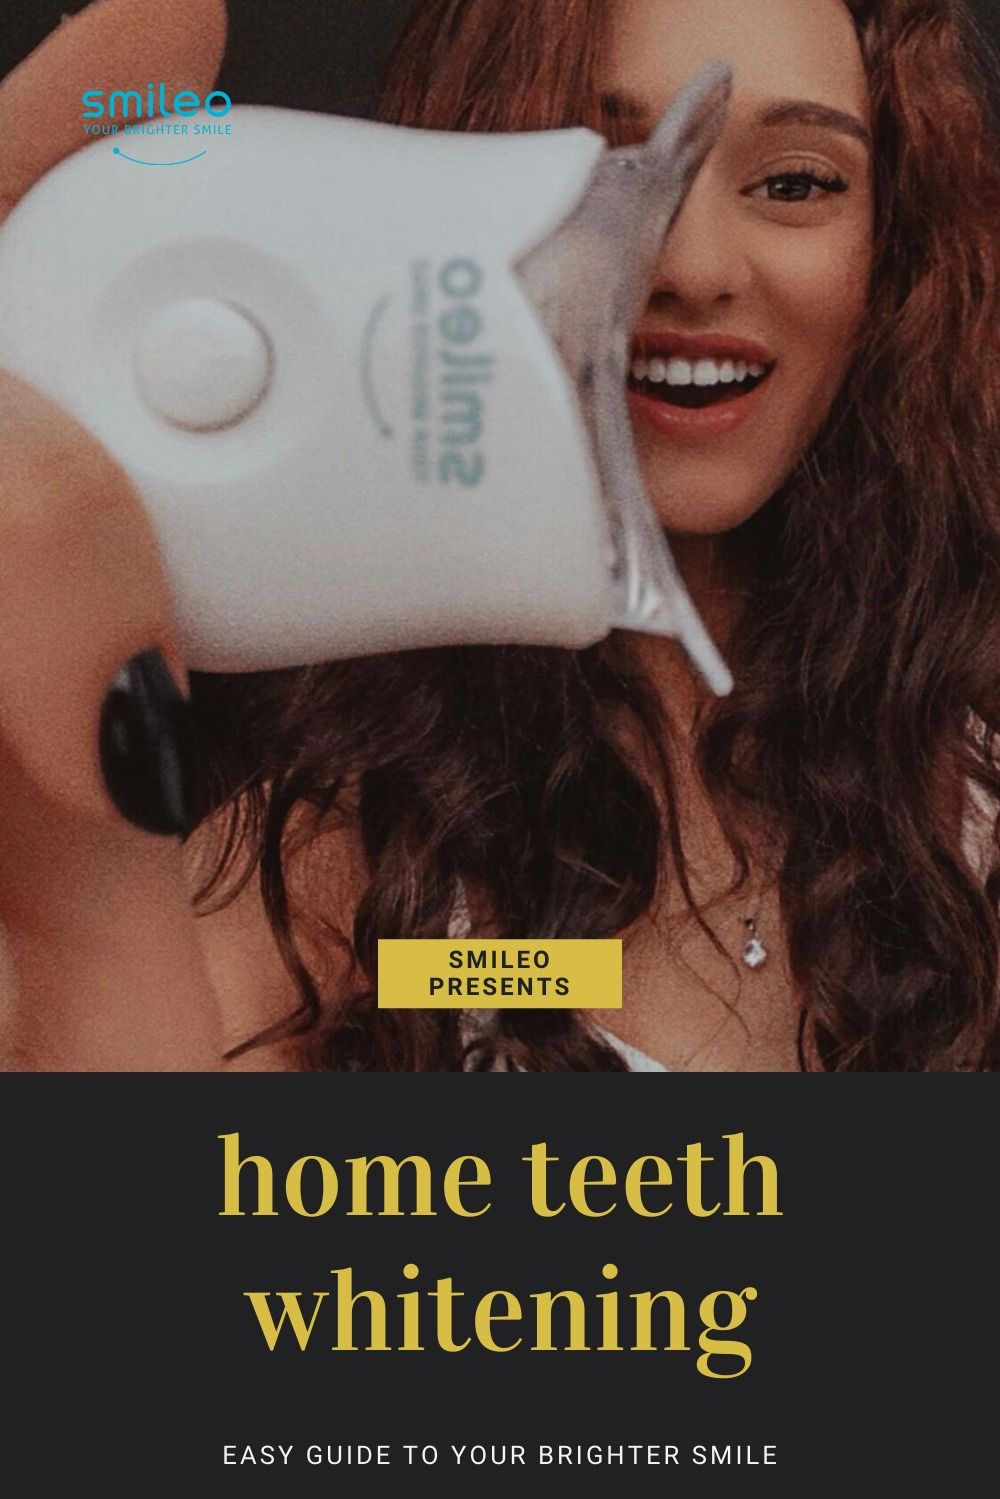 Learn more about Home Teeth Whitening with this guide. Follow all the steps to get Your Brighter Smile! All our products are vegan and cruelty free. #Brighterteeth #smileo #TeethWhitening #OralCare #Beauty #BeautyProducts #NaturalProducts #AllNatural #AtHomeWhitening #BrighterSmile #VeganProduct